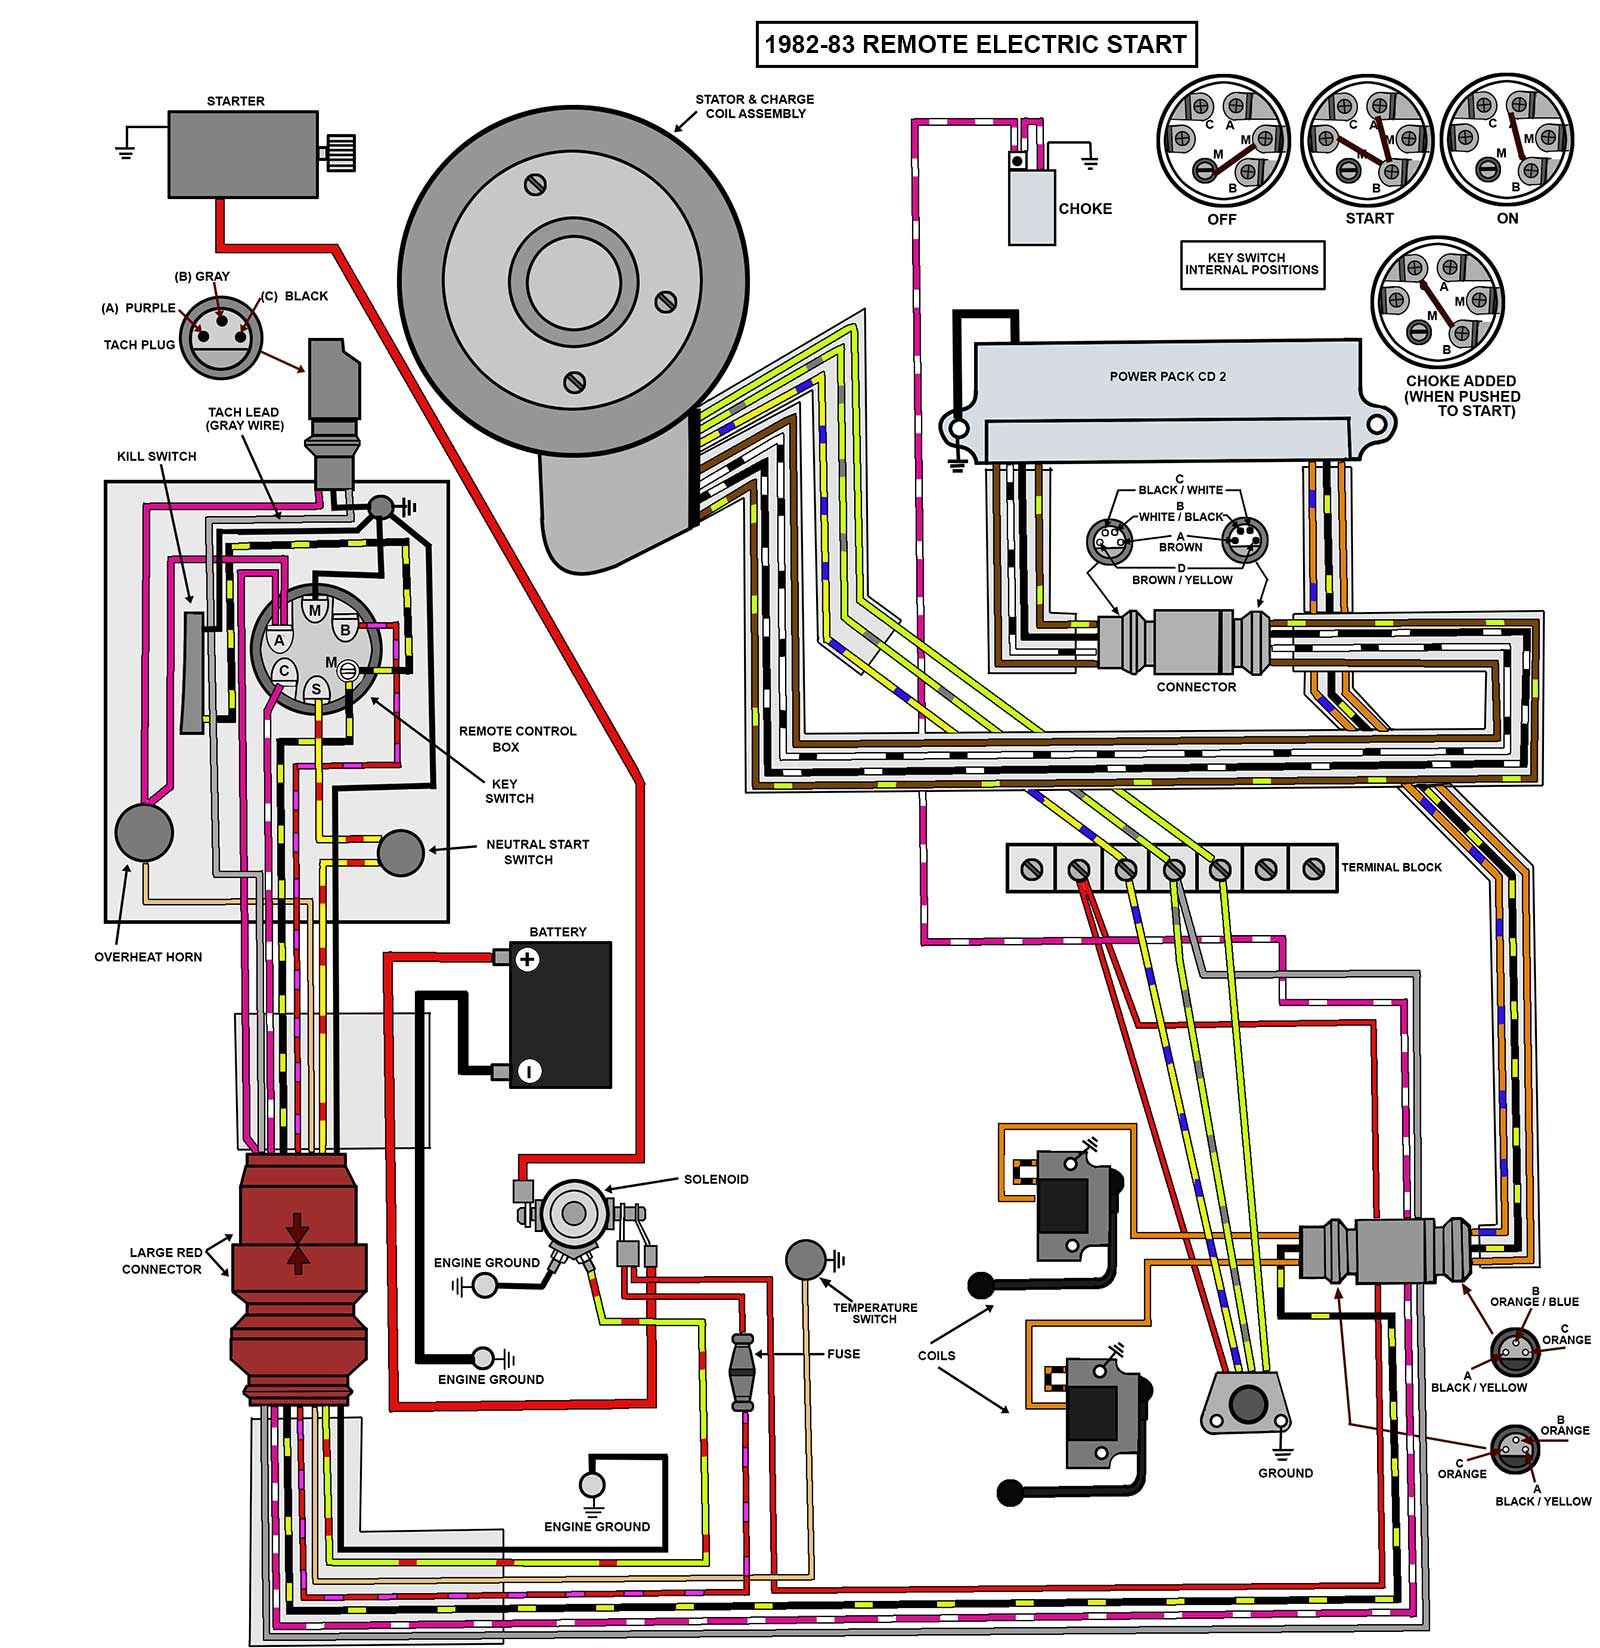 25_35_82 83_elec remote feather craft hookup diagrams wiring, steering, etc Johnson Ignition Switch Wiring Diagram at gsmportal.co